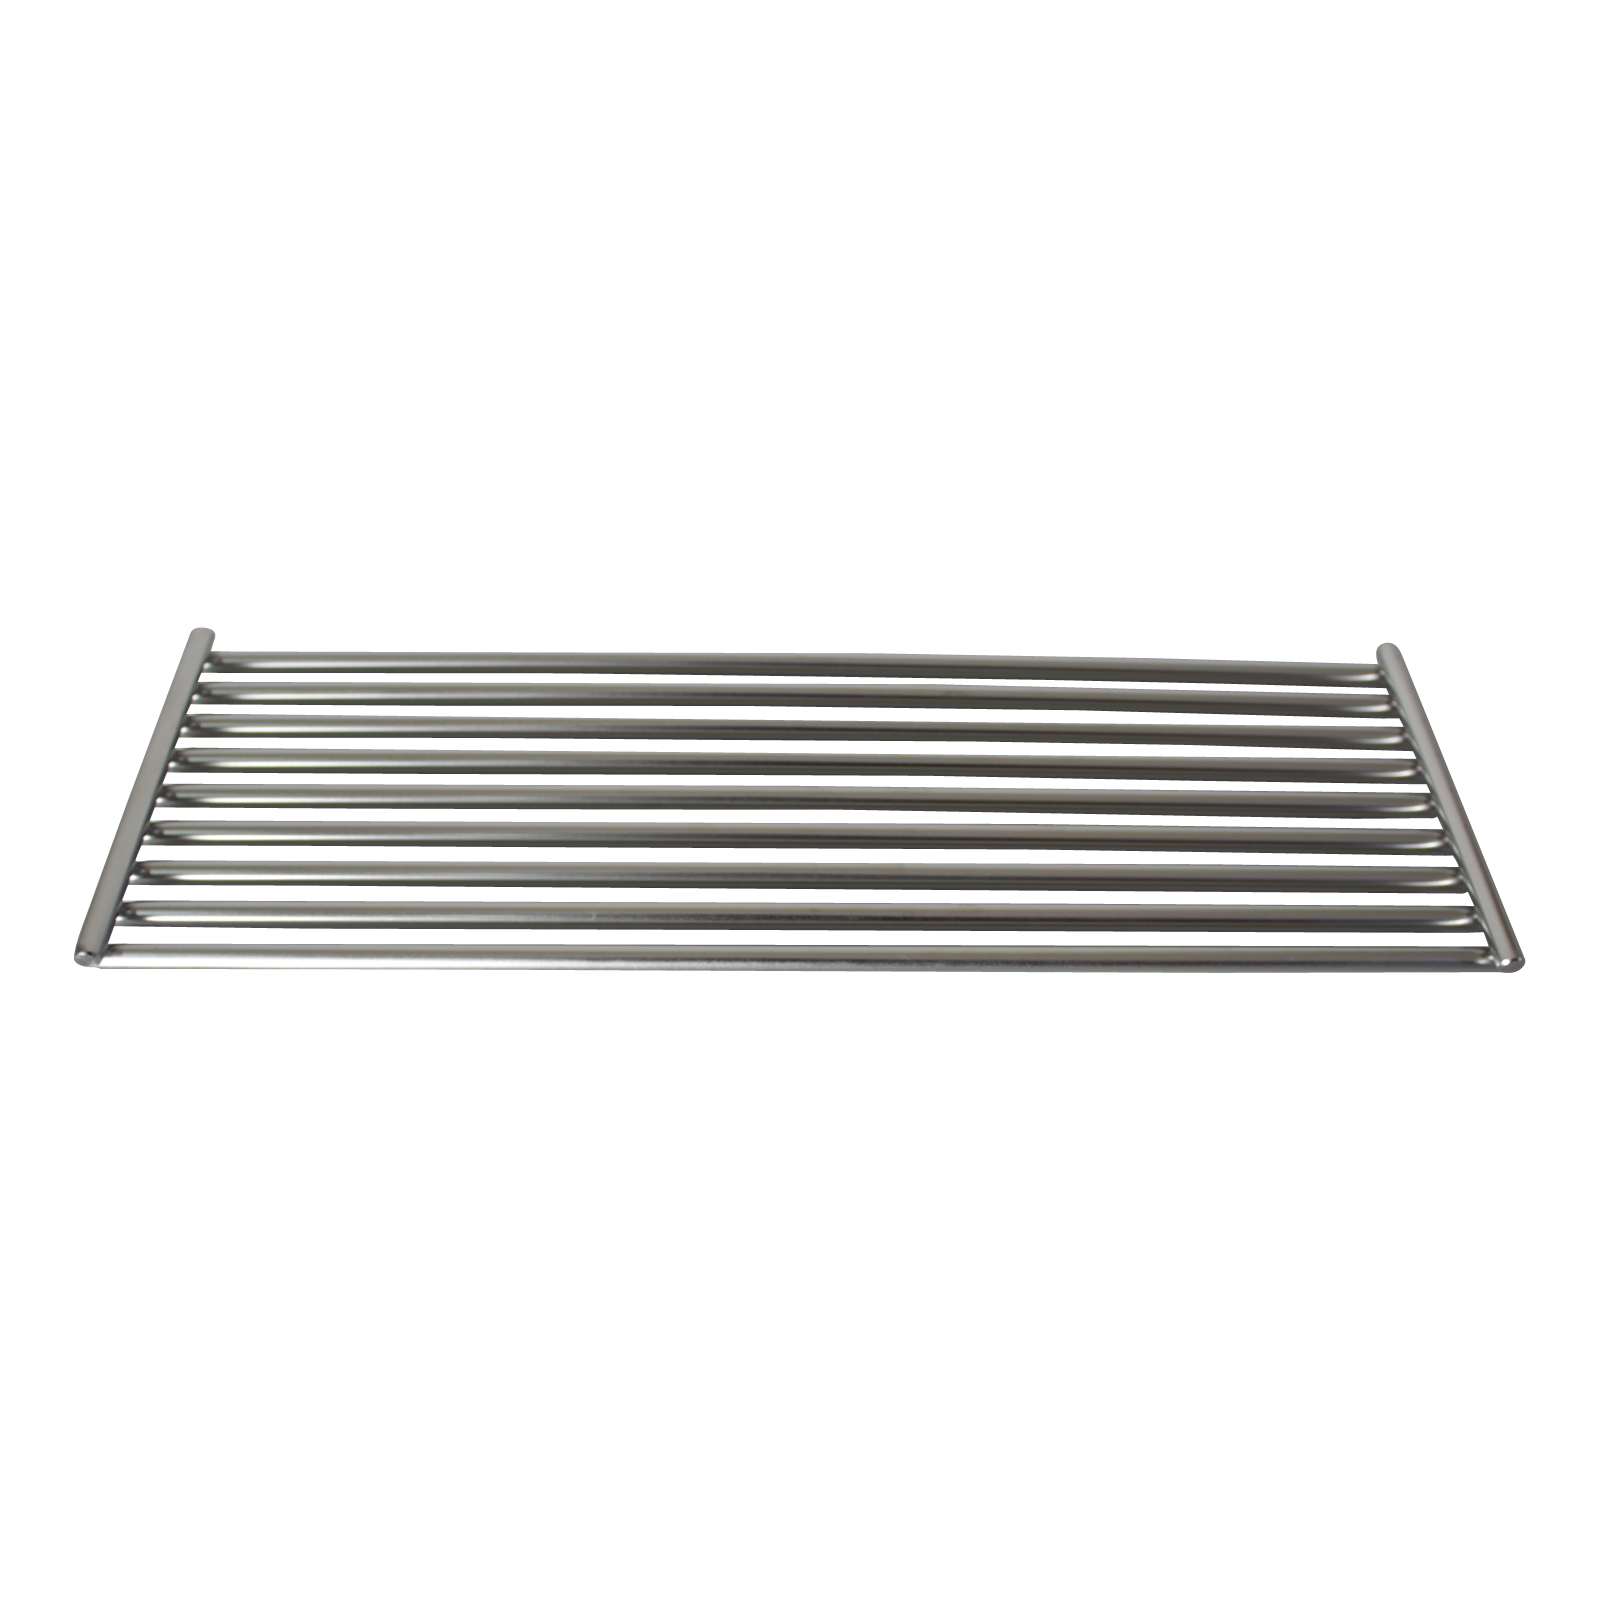 New beefeater stainless steel grill plate